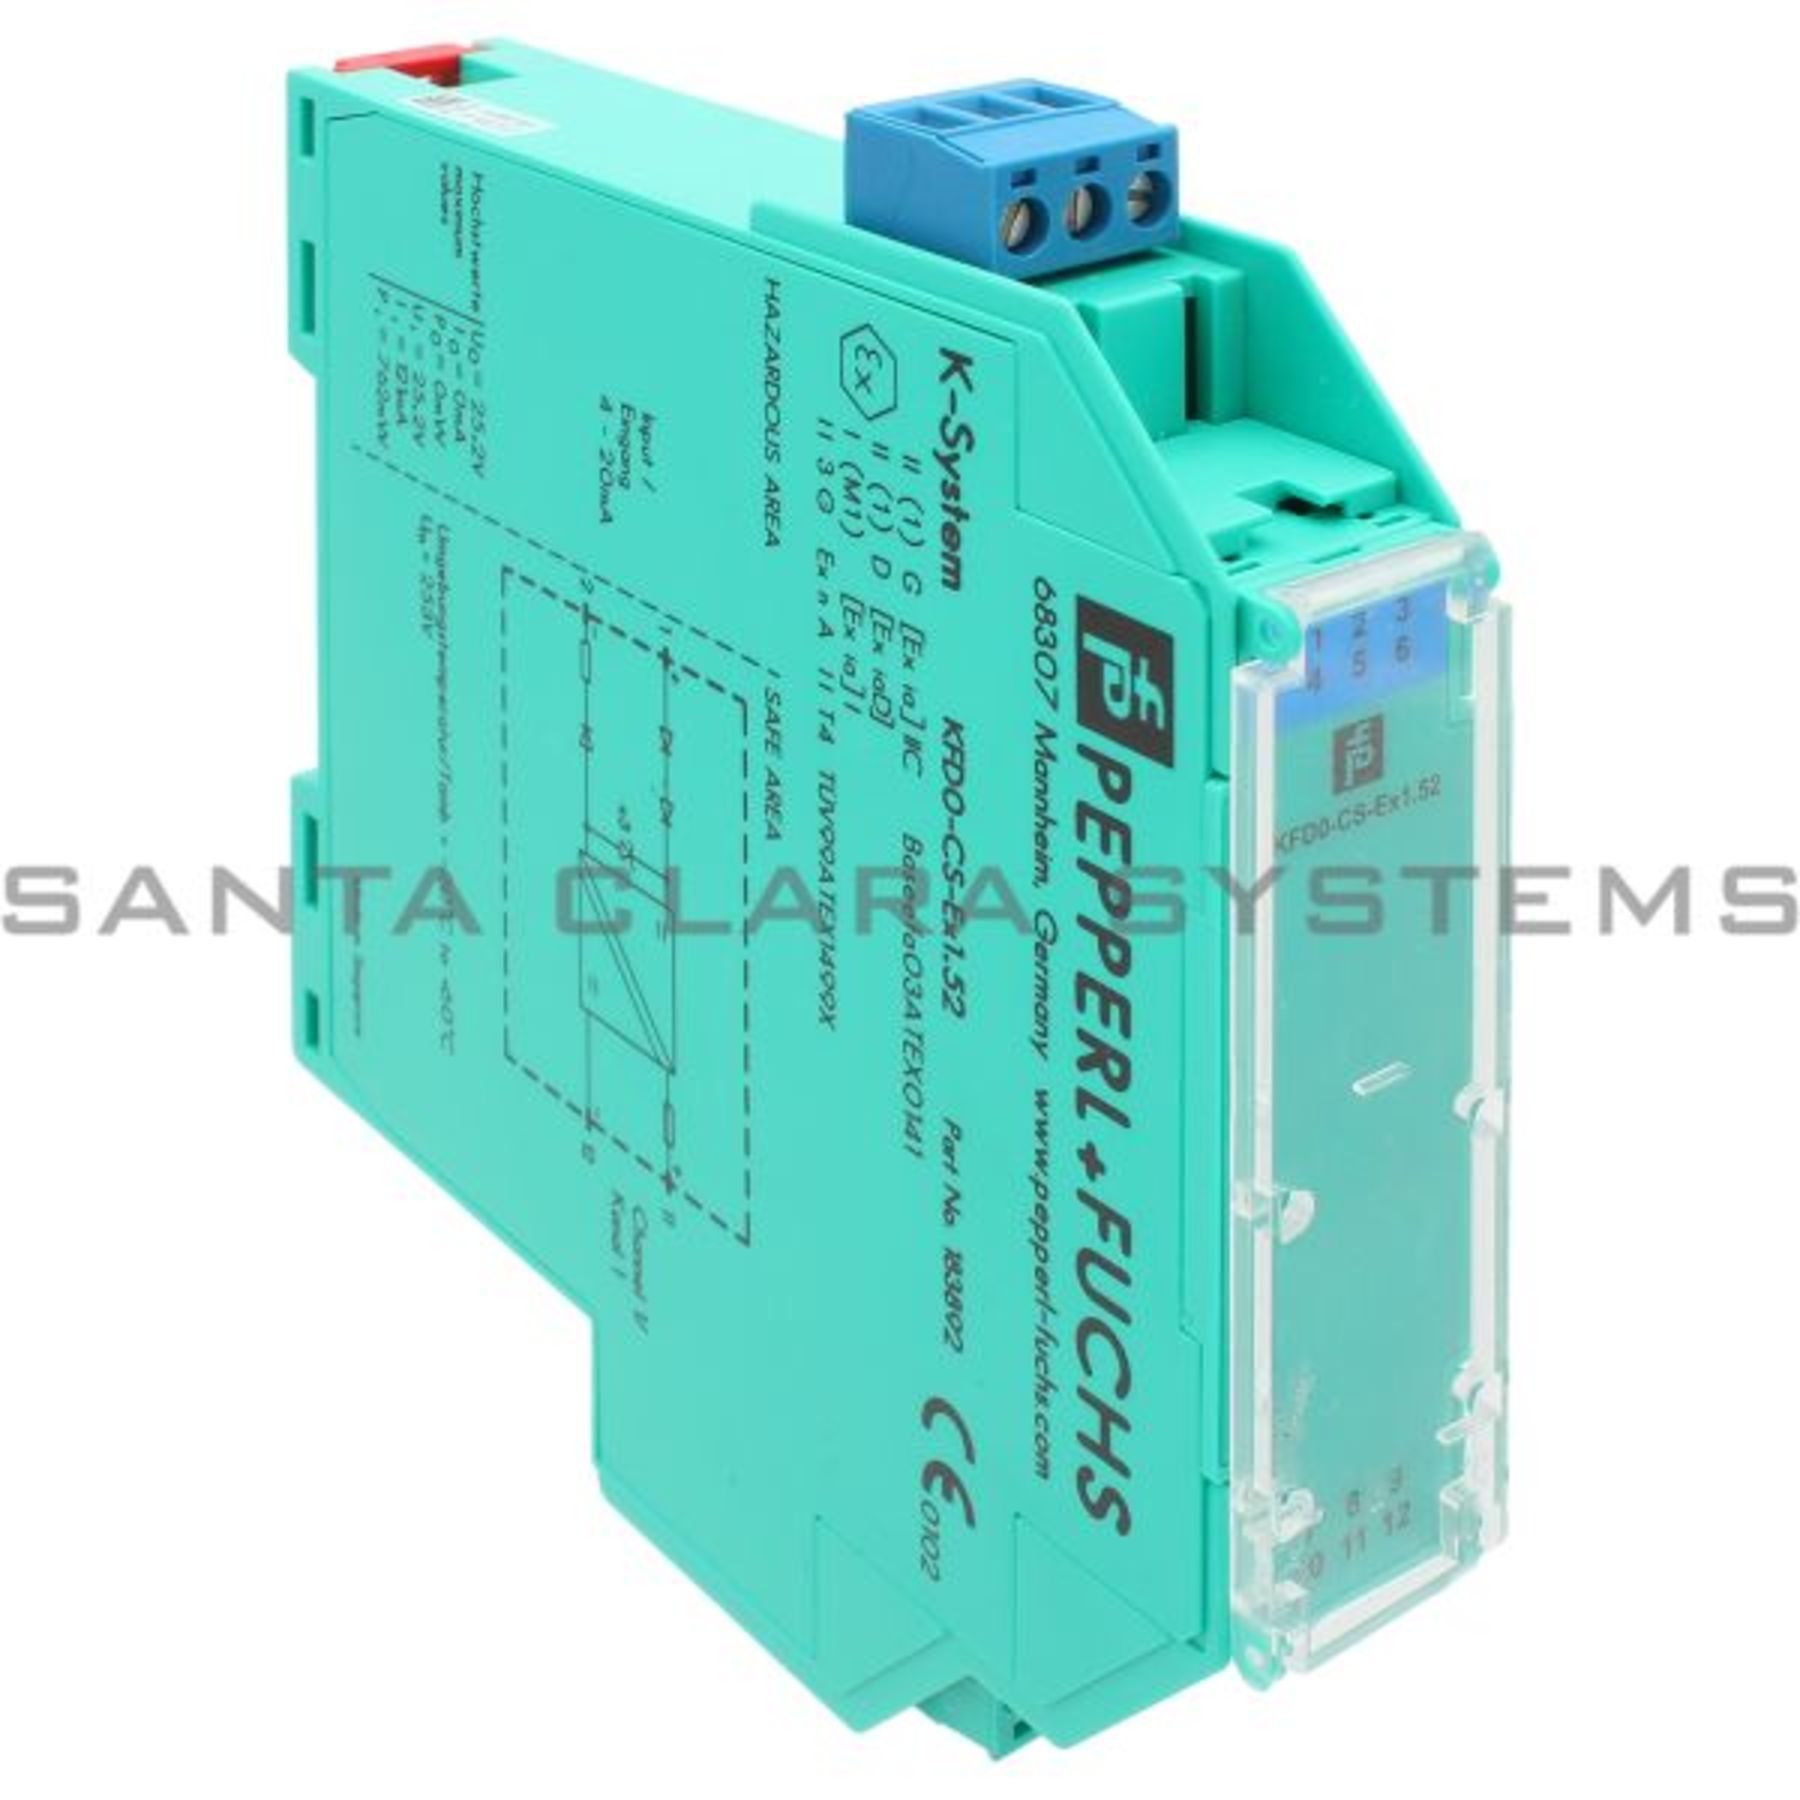 Kfd0 Cs Ex152 Pepperl Fuchs Repeater Out Of Stock Santa Clara Systems Wiring Diagram Product Image